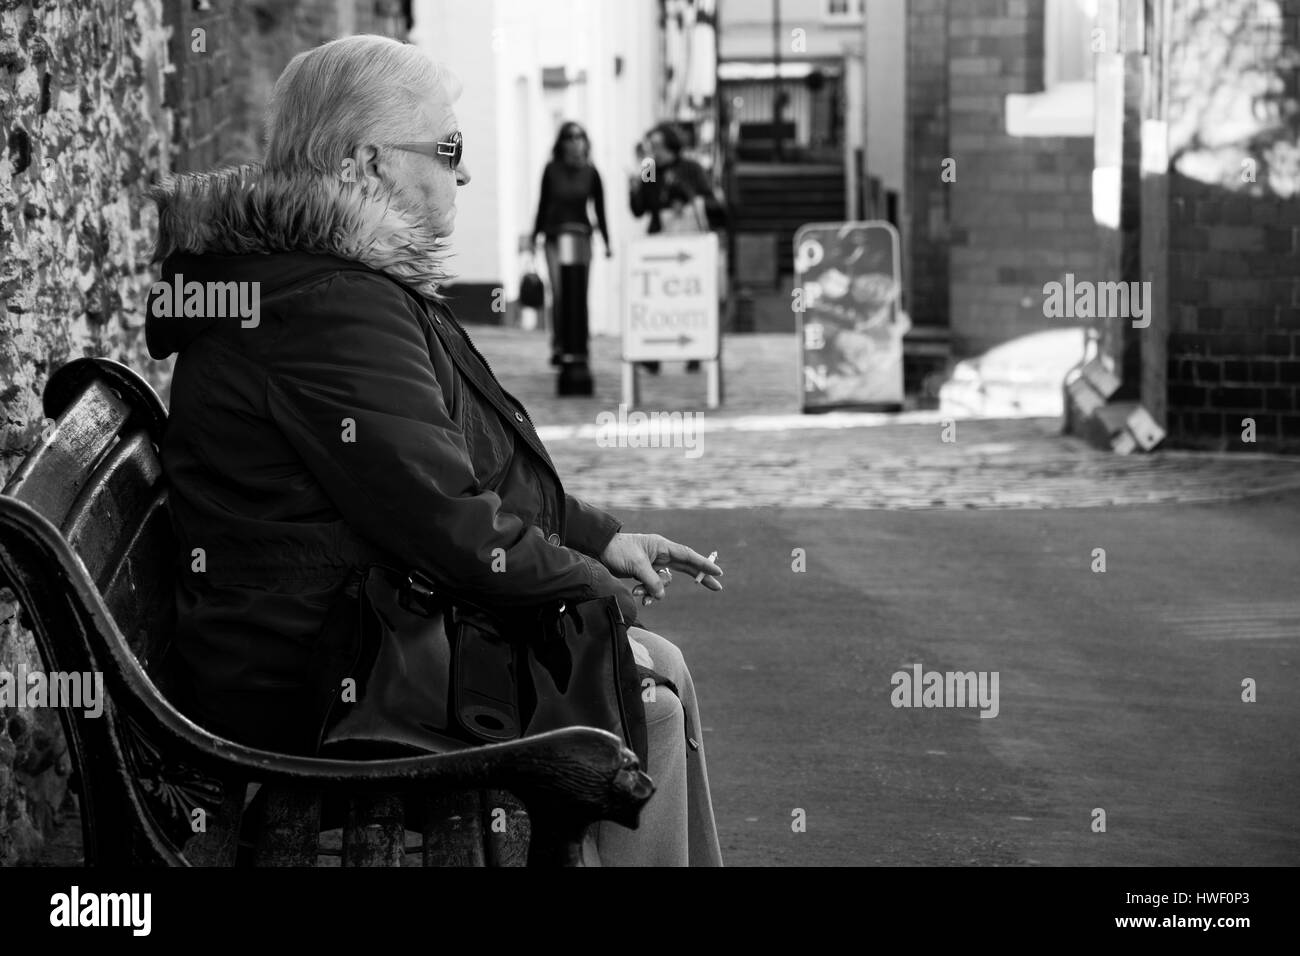 An elderly woman sitting on a bench smoking a cigarette. - Stock Image